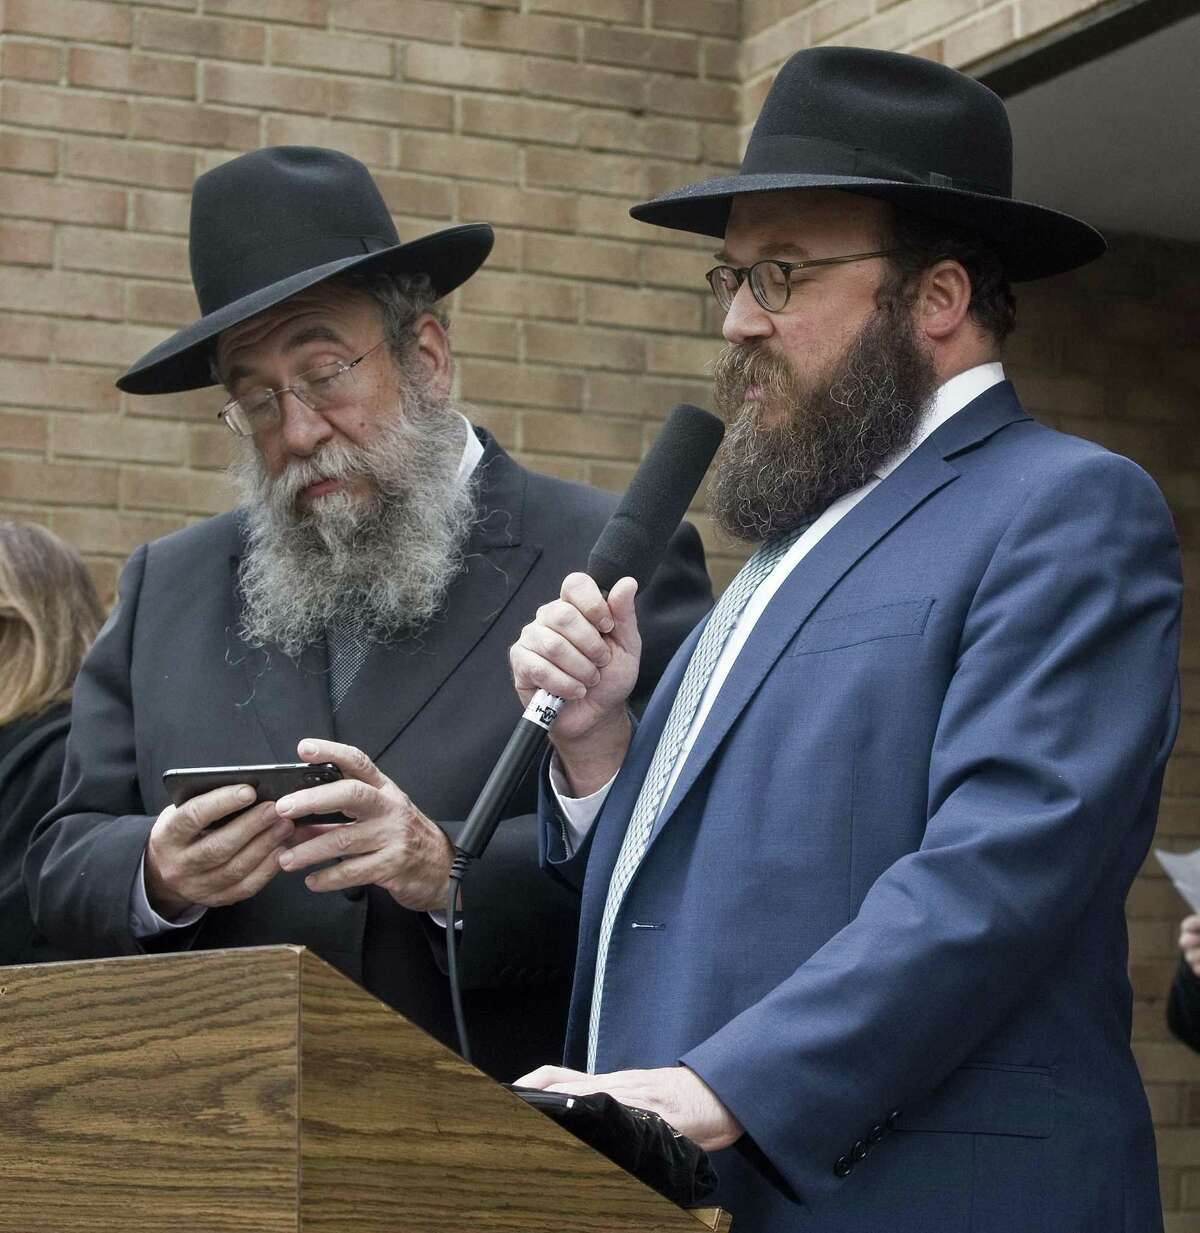 Rabbi Yisrael Deren, of Chabad of Stamford, and Rabbi Yossi Deren, of Chabad of Greenwich, address the vigil at Agudath Sholom in Stamford, for the loss of life at the Tree of Life synagogue in Pittsburgh. Sunday, Oct. 28, 2018